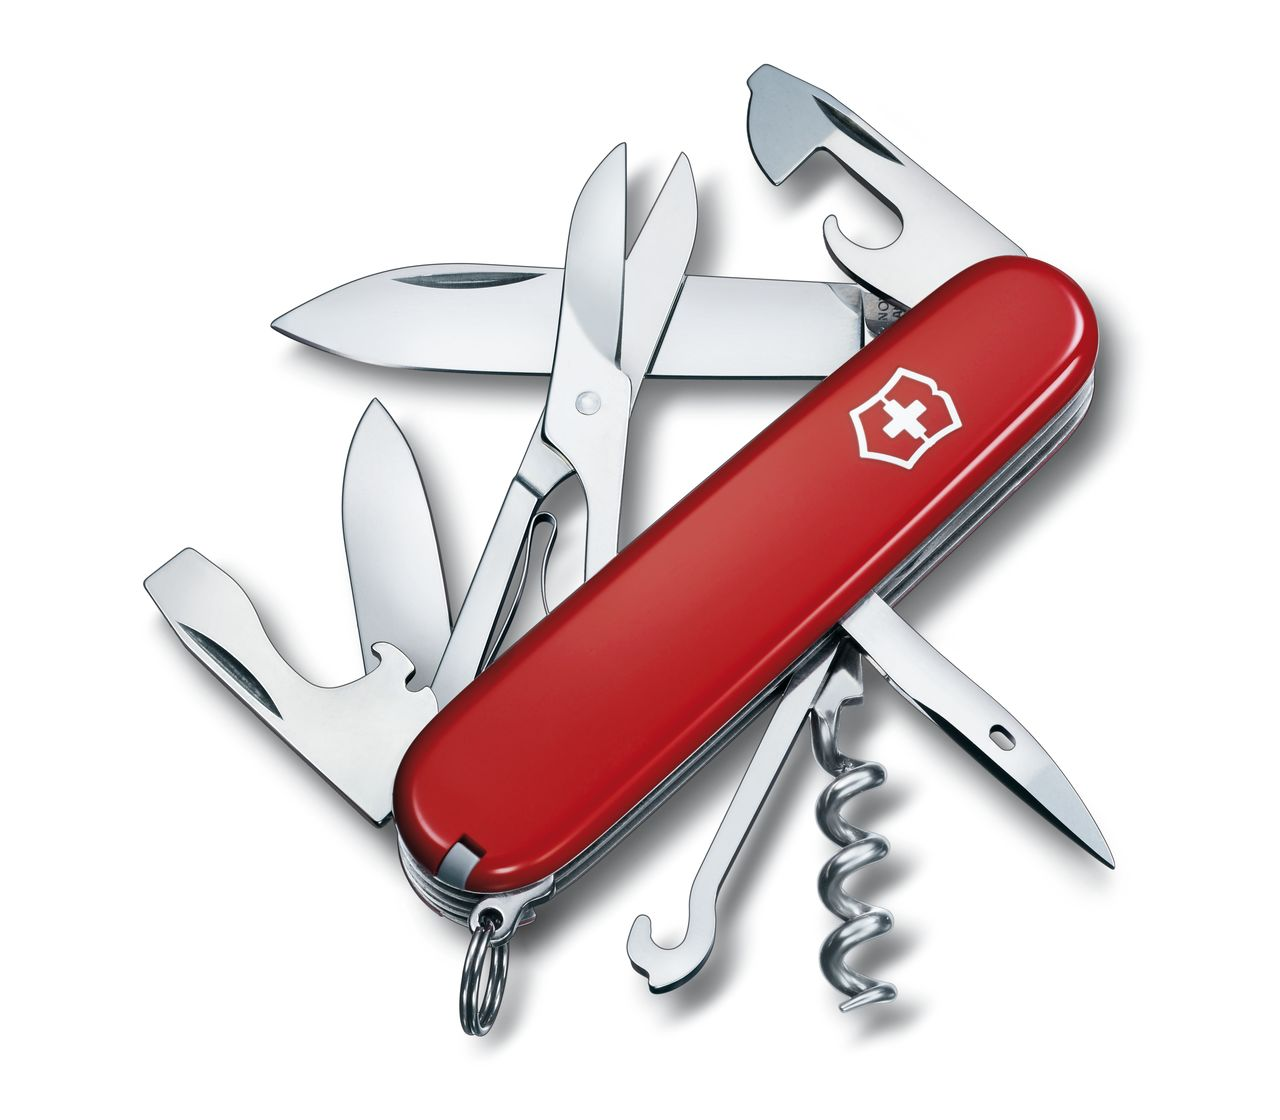 Victorinox Climber In Red 1 3703